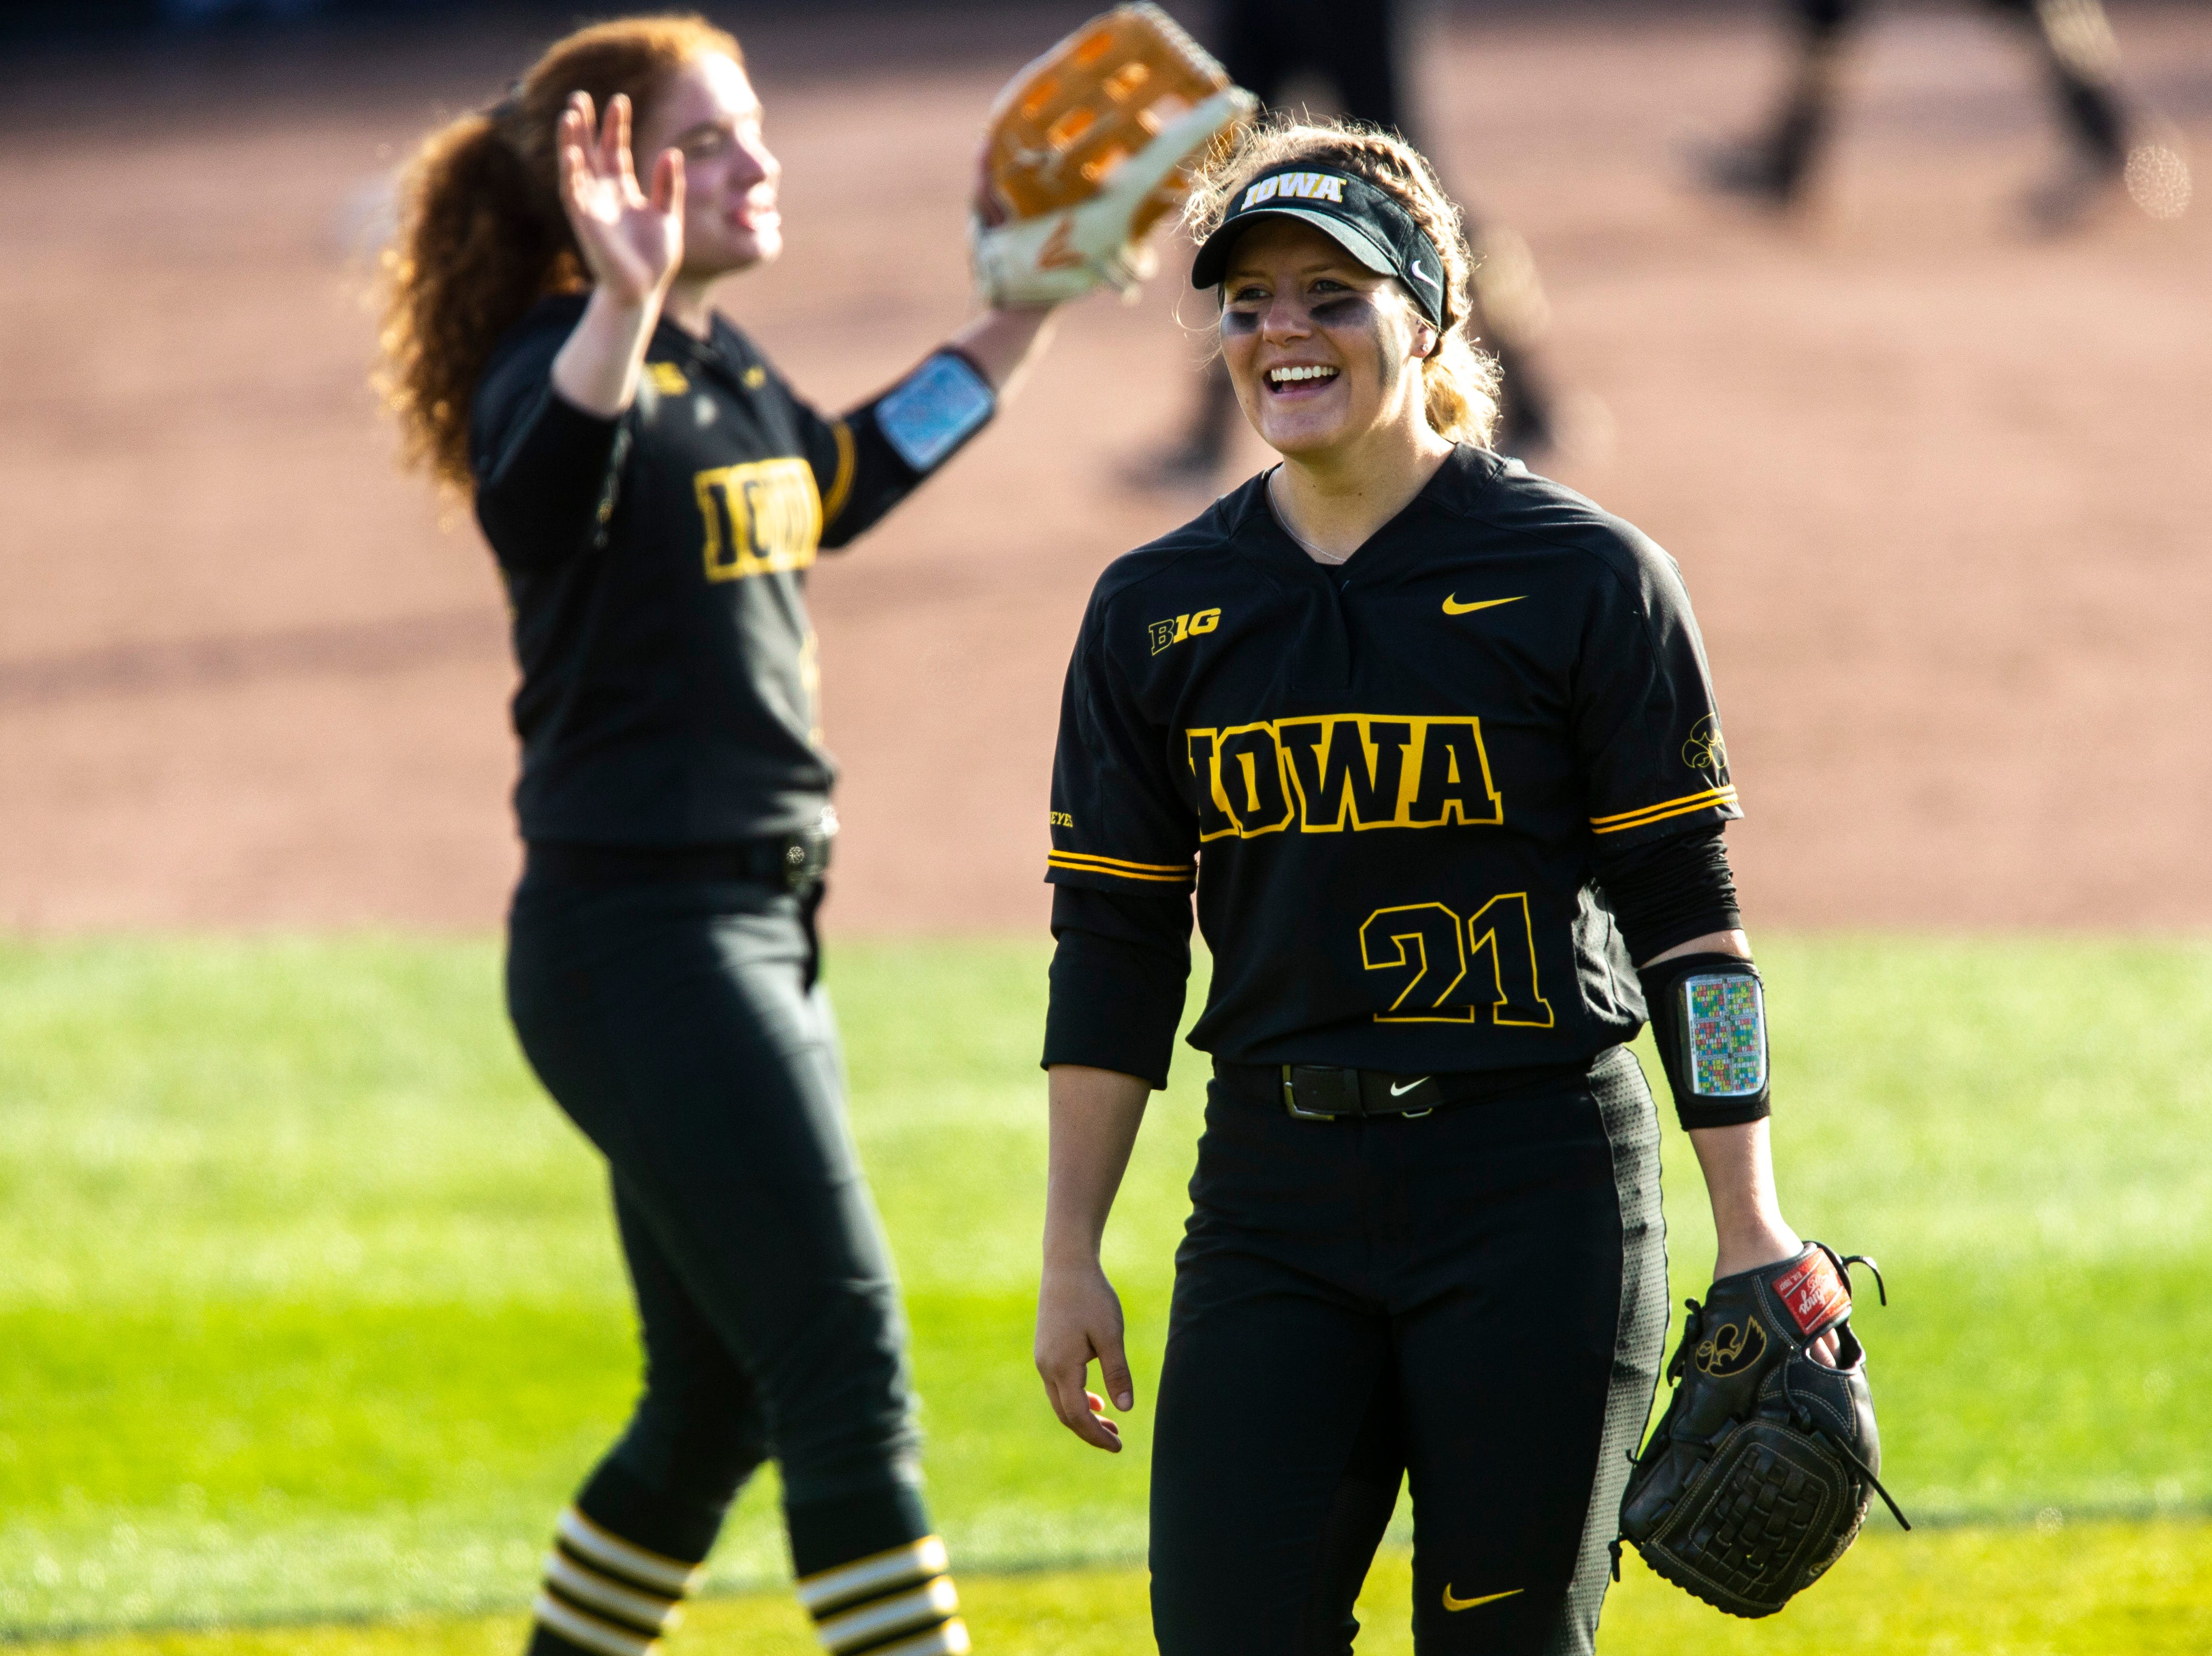 Iowa outfielder Havyn Monteer (21) smiles in between innings during a NCAA Big Ten Conference softball game on Saturday, April 13, 2019, at Bob Pearl Field in Coralville, Iowa.